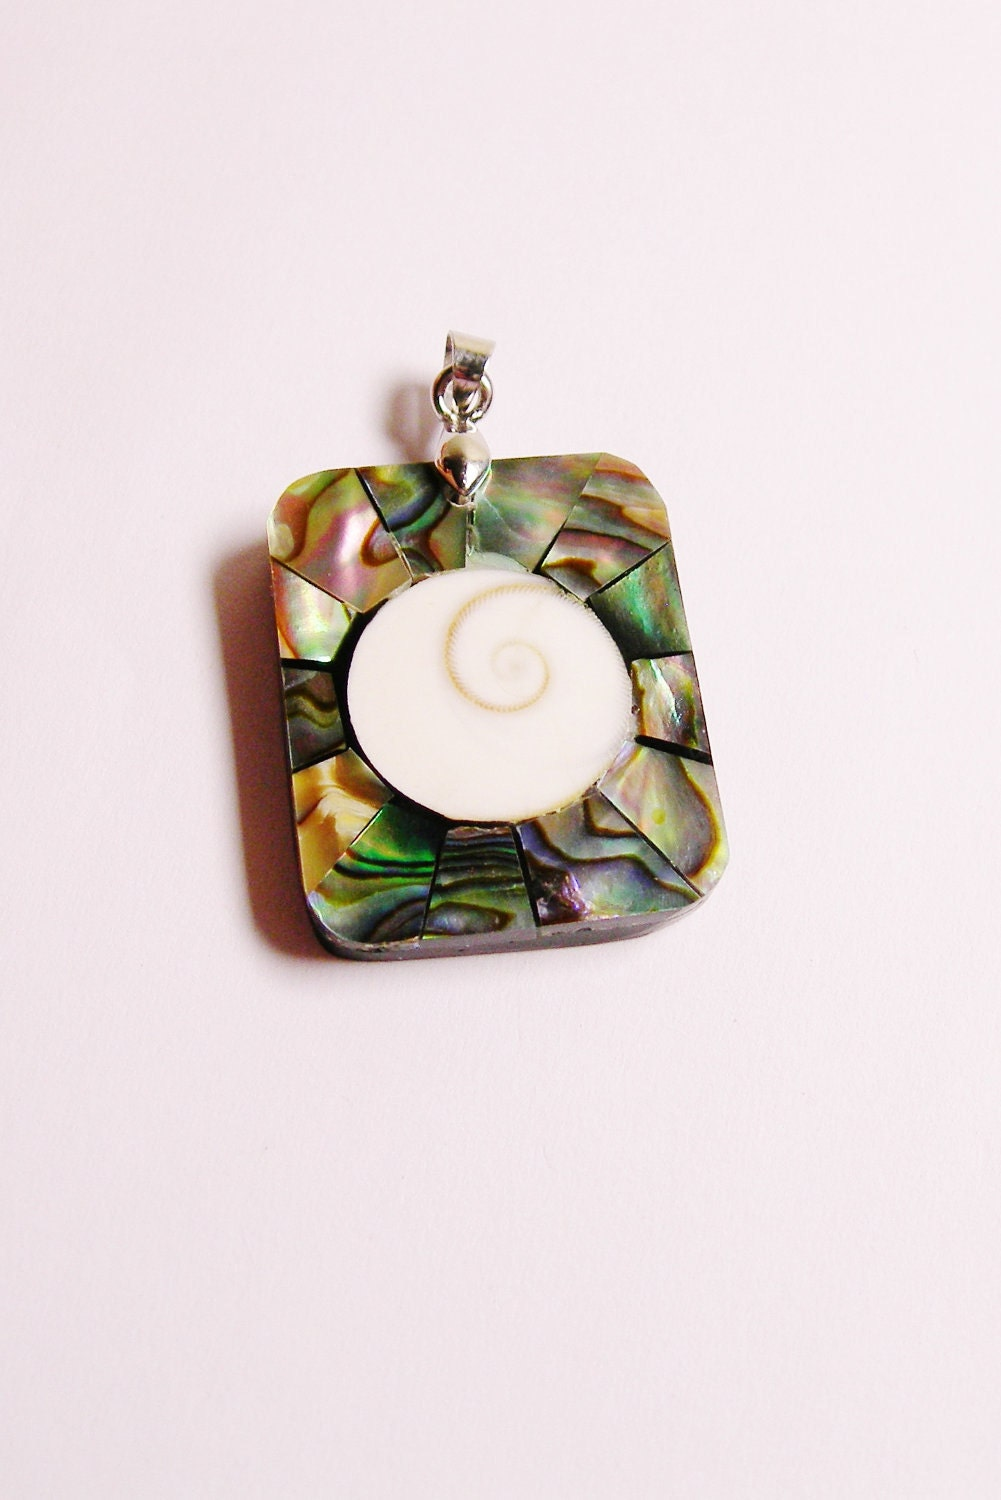 Abalone and shiva eye seashell  pendant focal bail included 1 pcs natural